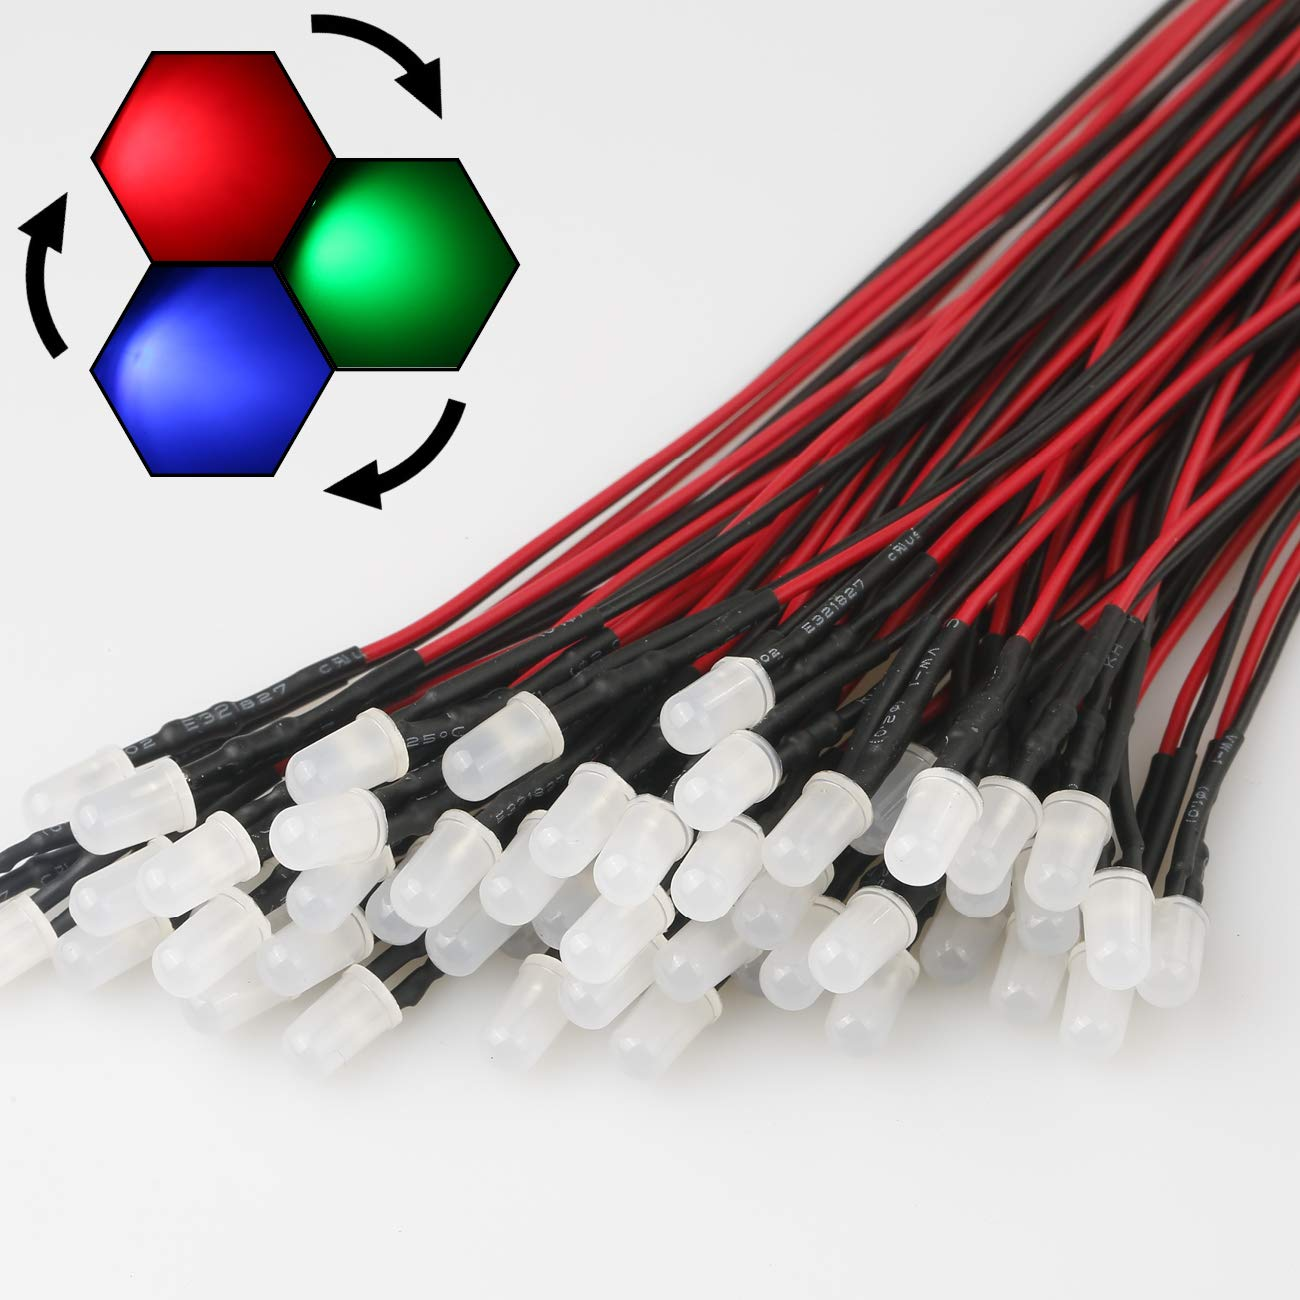 EDGELEC 50pcs 12 Volt 5mm Yellow Blinking LED Lights Emitting Diodes 1.5Hz Single Color Flashing Pre Wired 7.9 Inch DC 12v LED Light Diffused Colored Lens Small LED Lamps